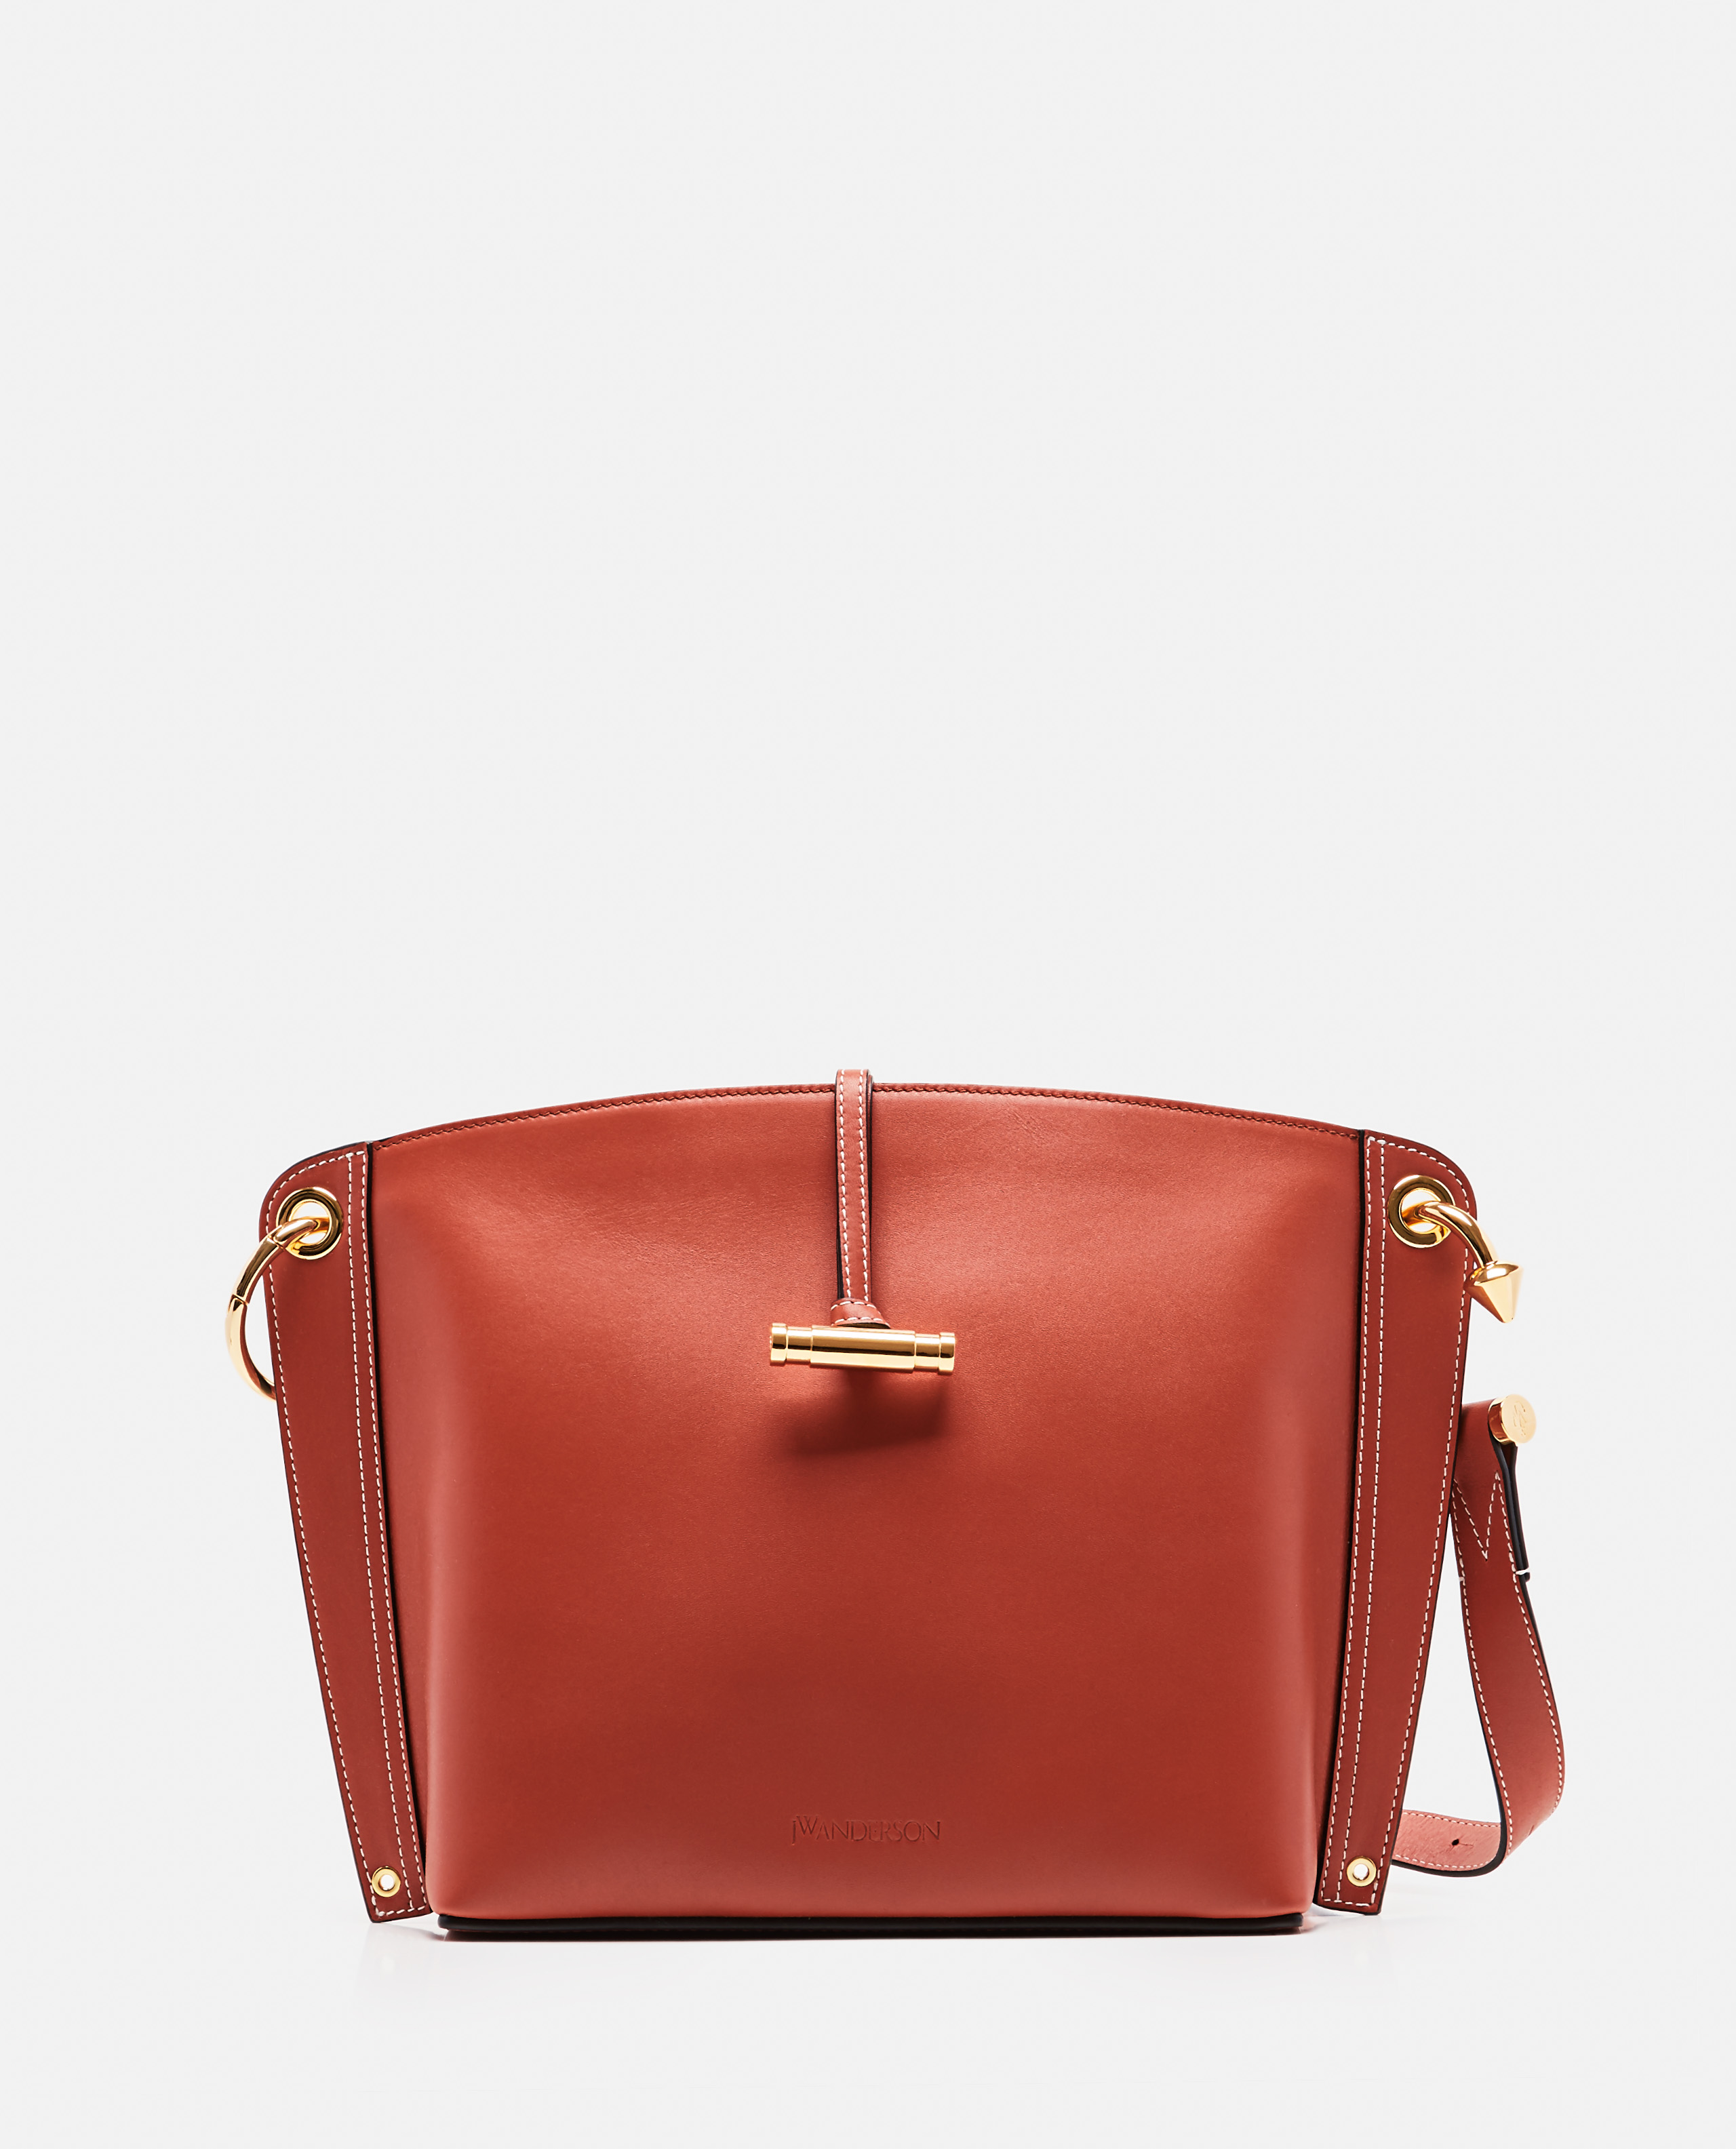 Disc leather shoulder bag